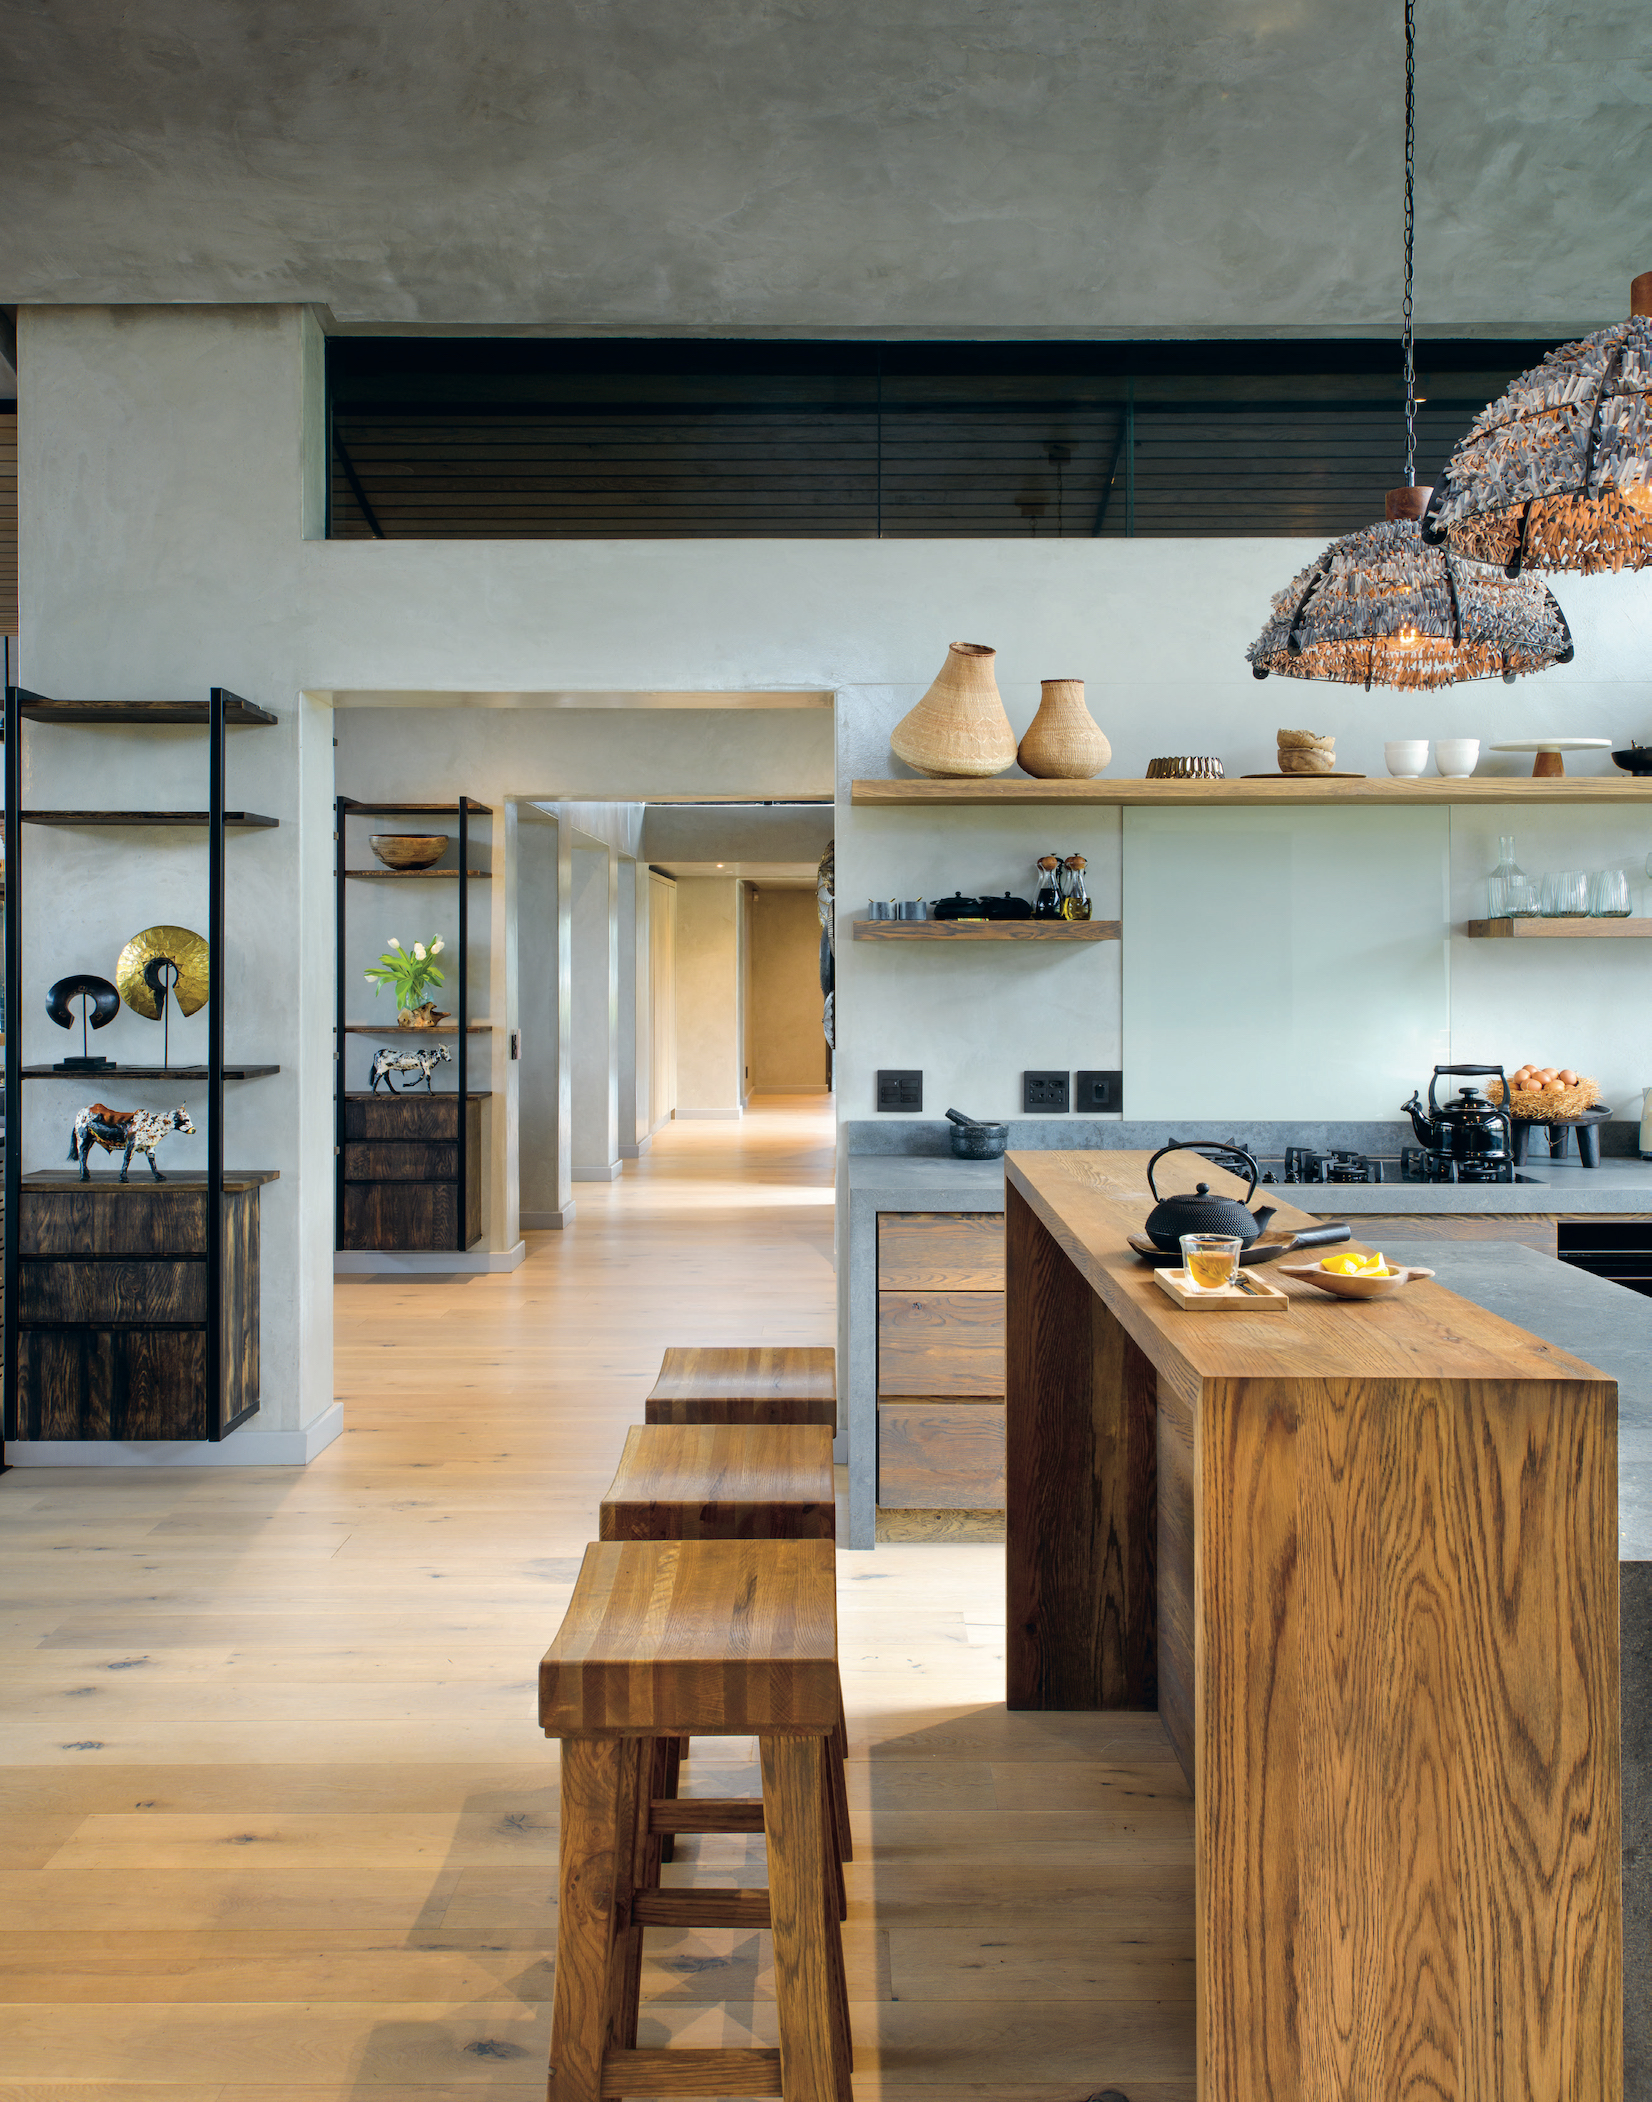 The sleek kitchen features a custom-made breakfast bar. The passageway that links the two wings of the villa runs through the centre of this communal space, and is a showcase of African art.